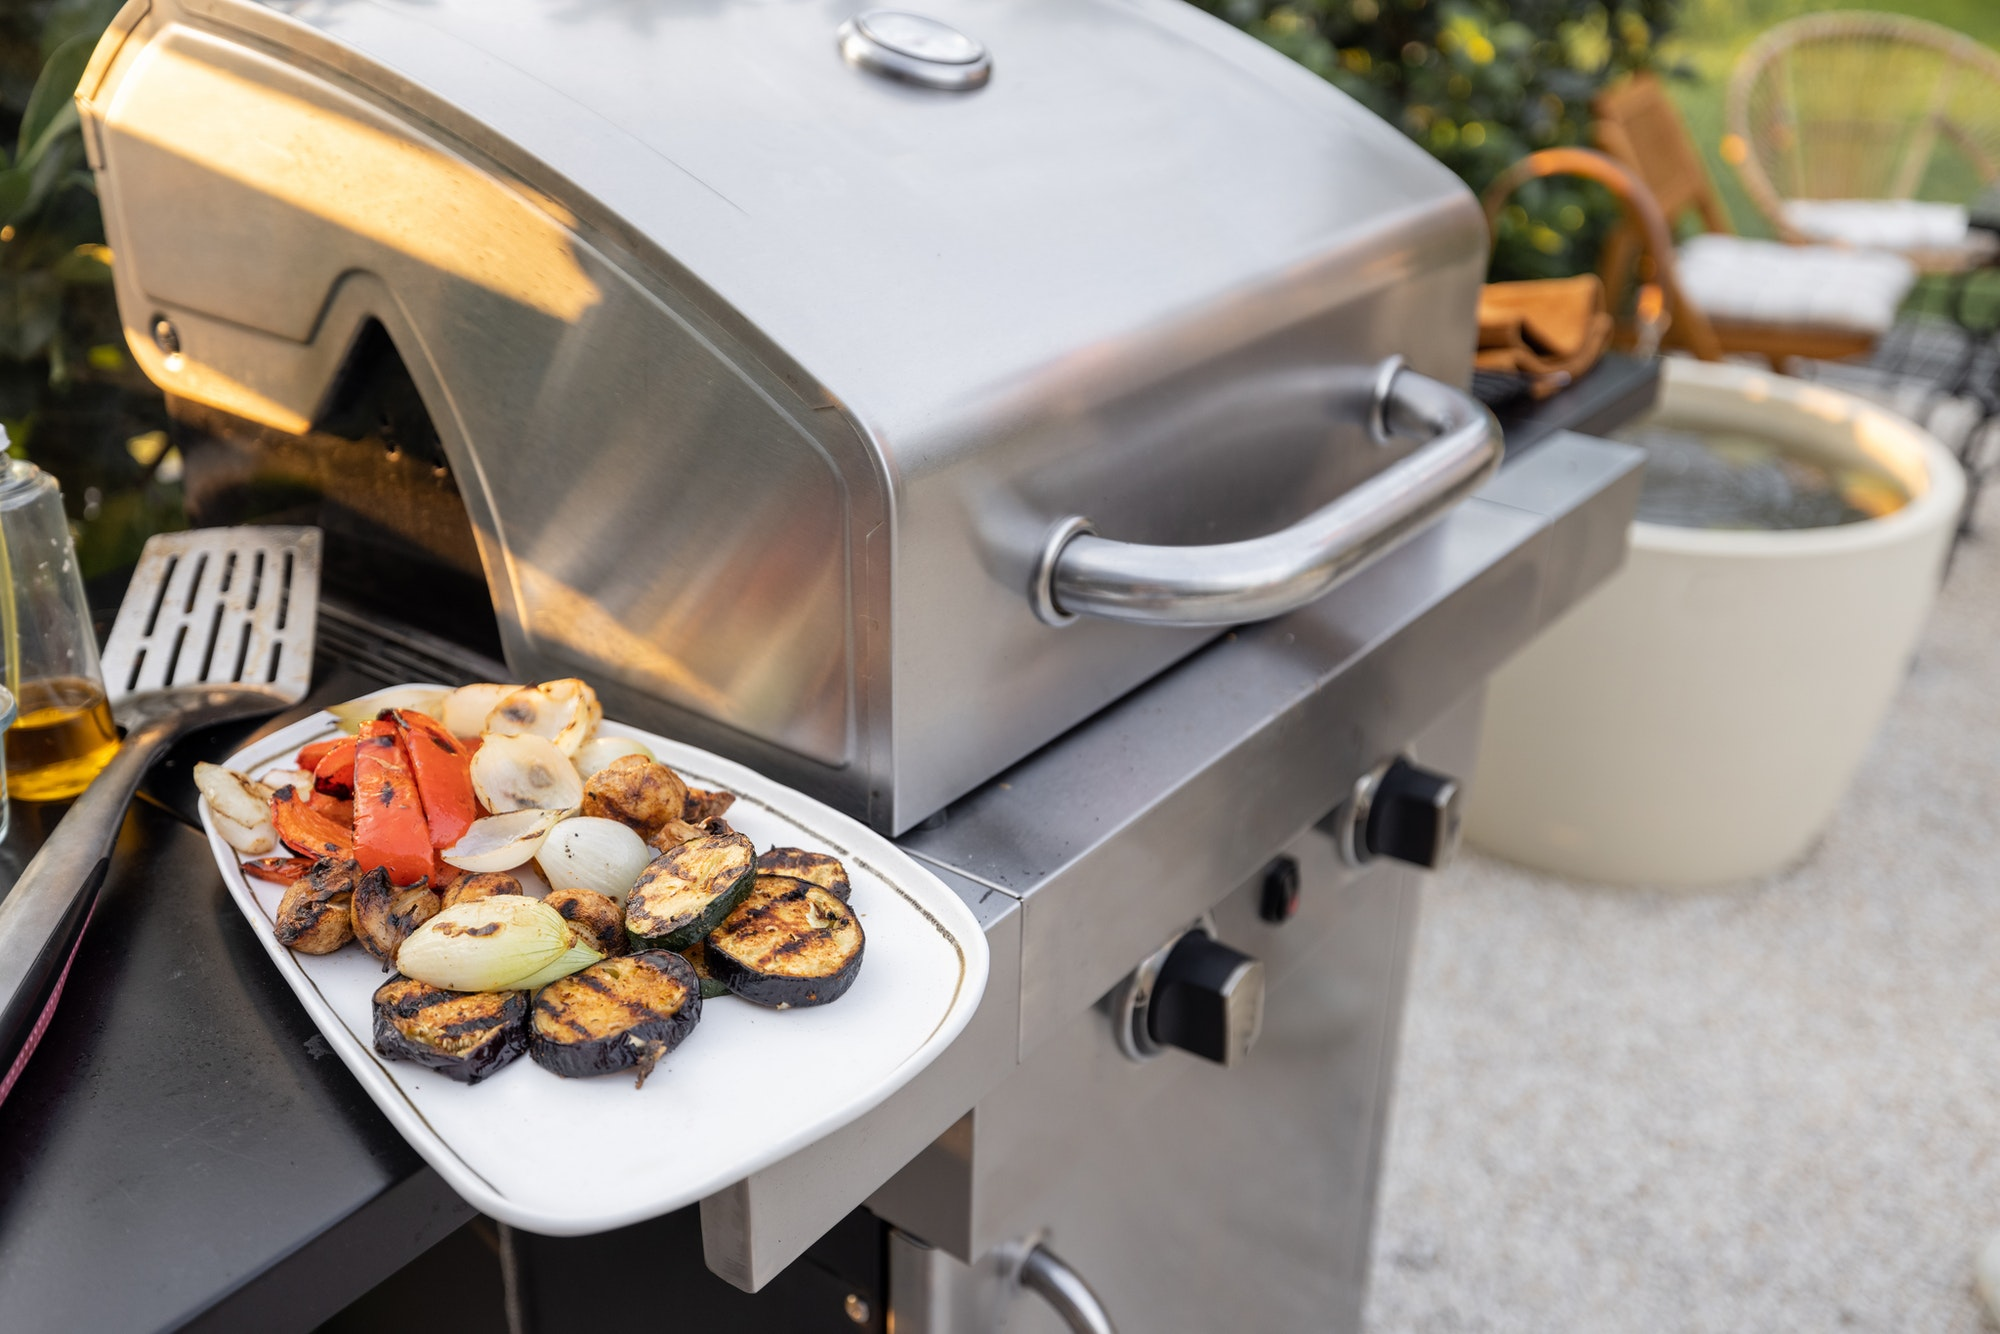 Grilled vegetables on a grill